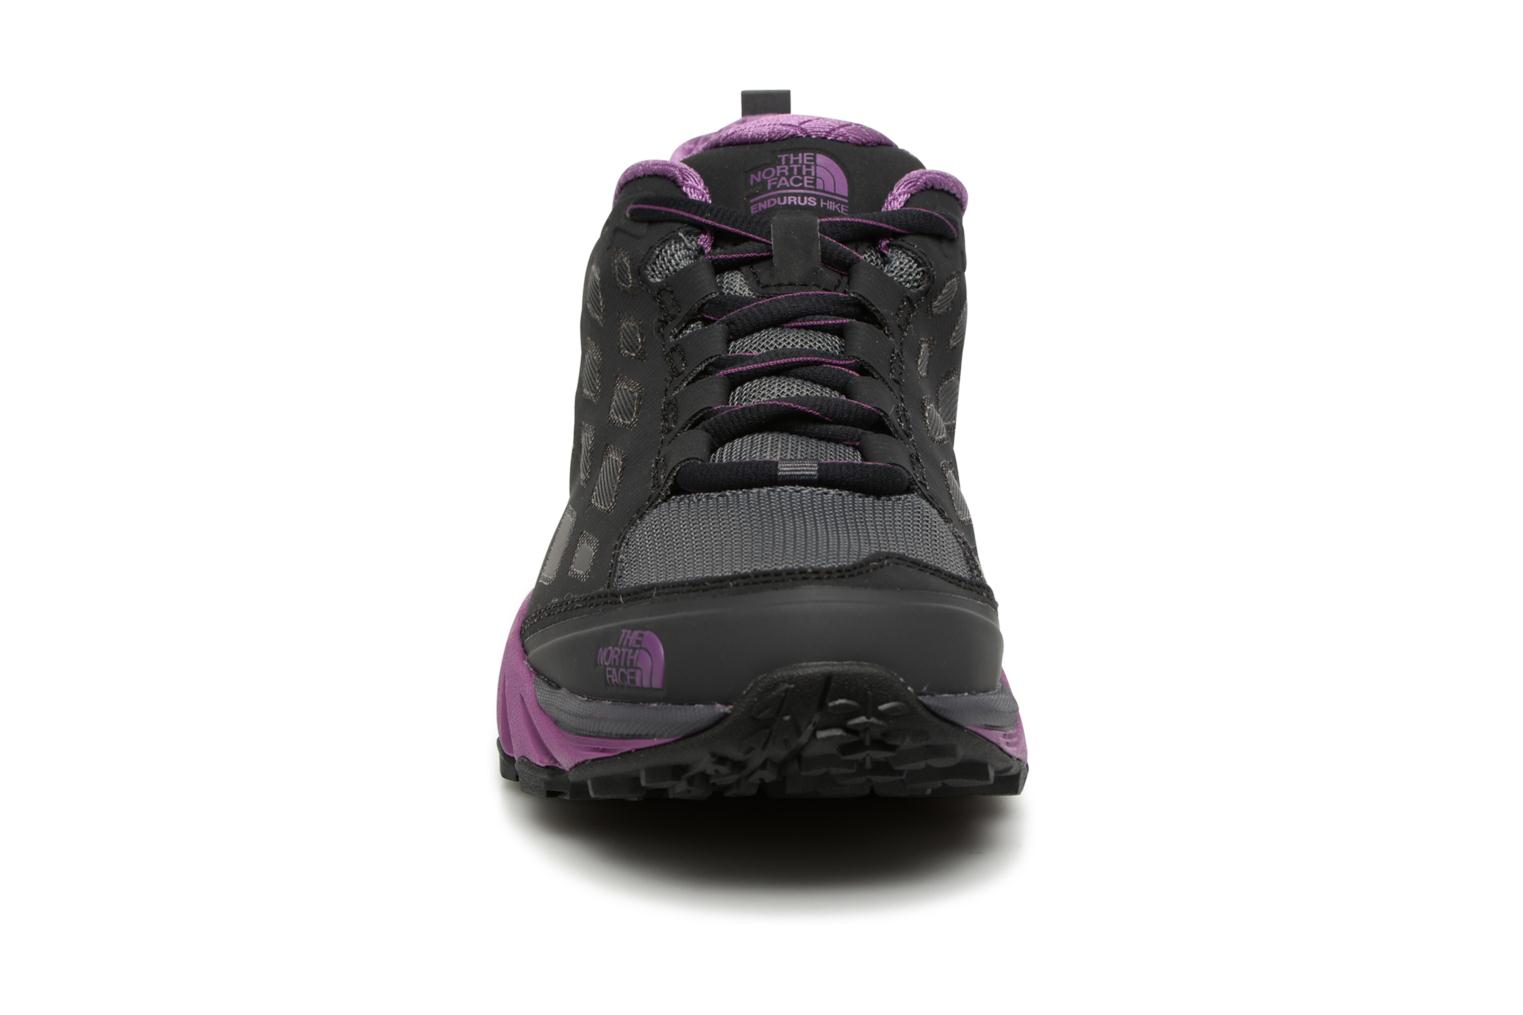 Endurus Hike GTX W phantom grey / wood violet